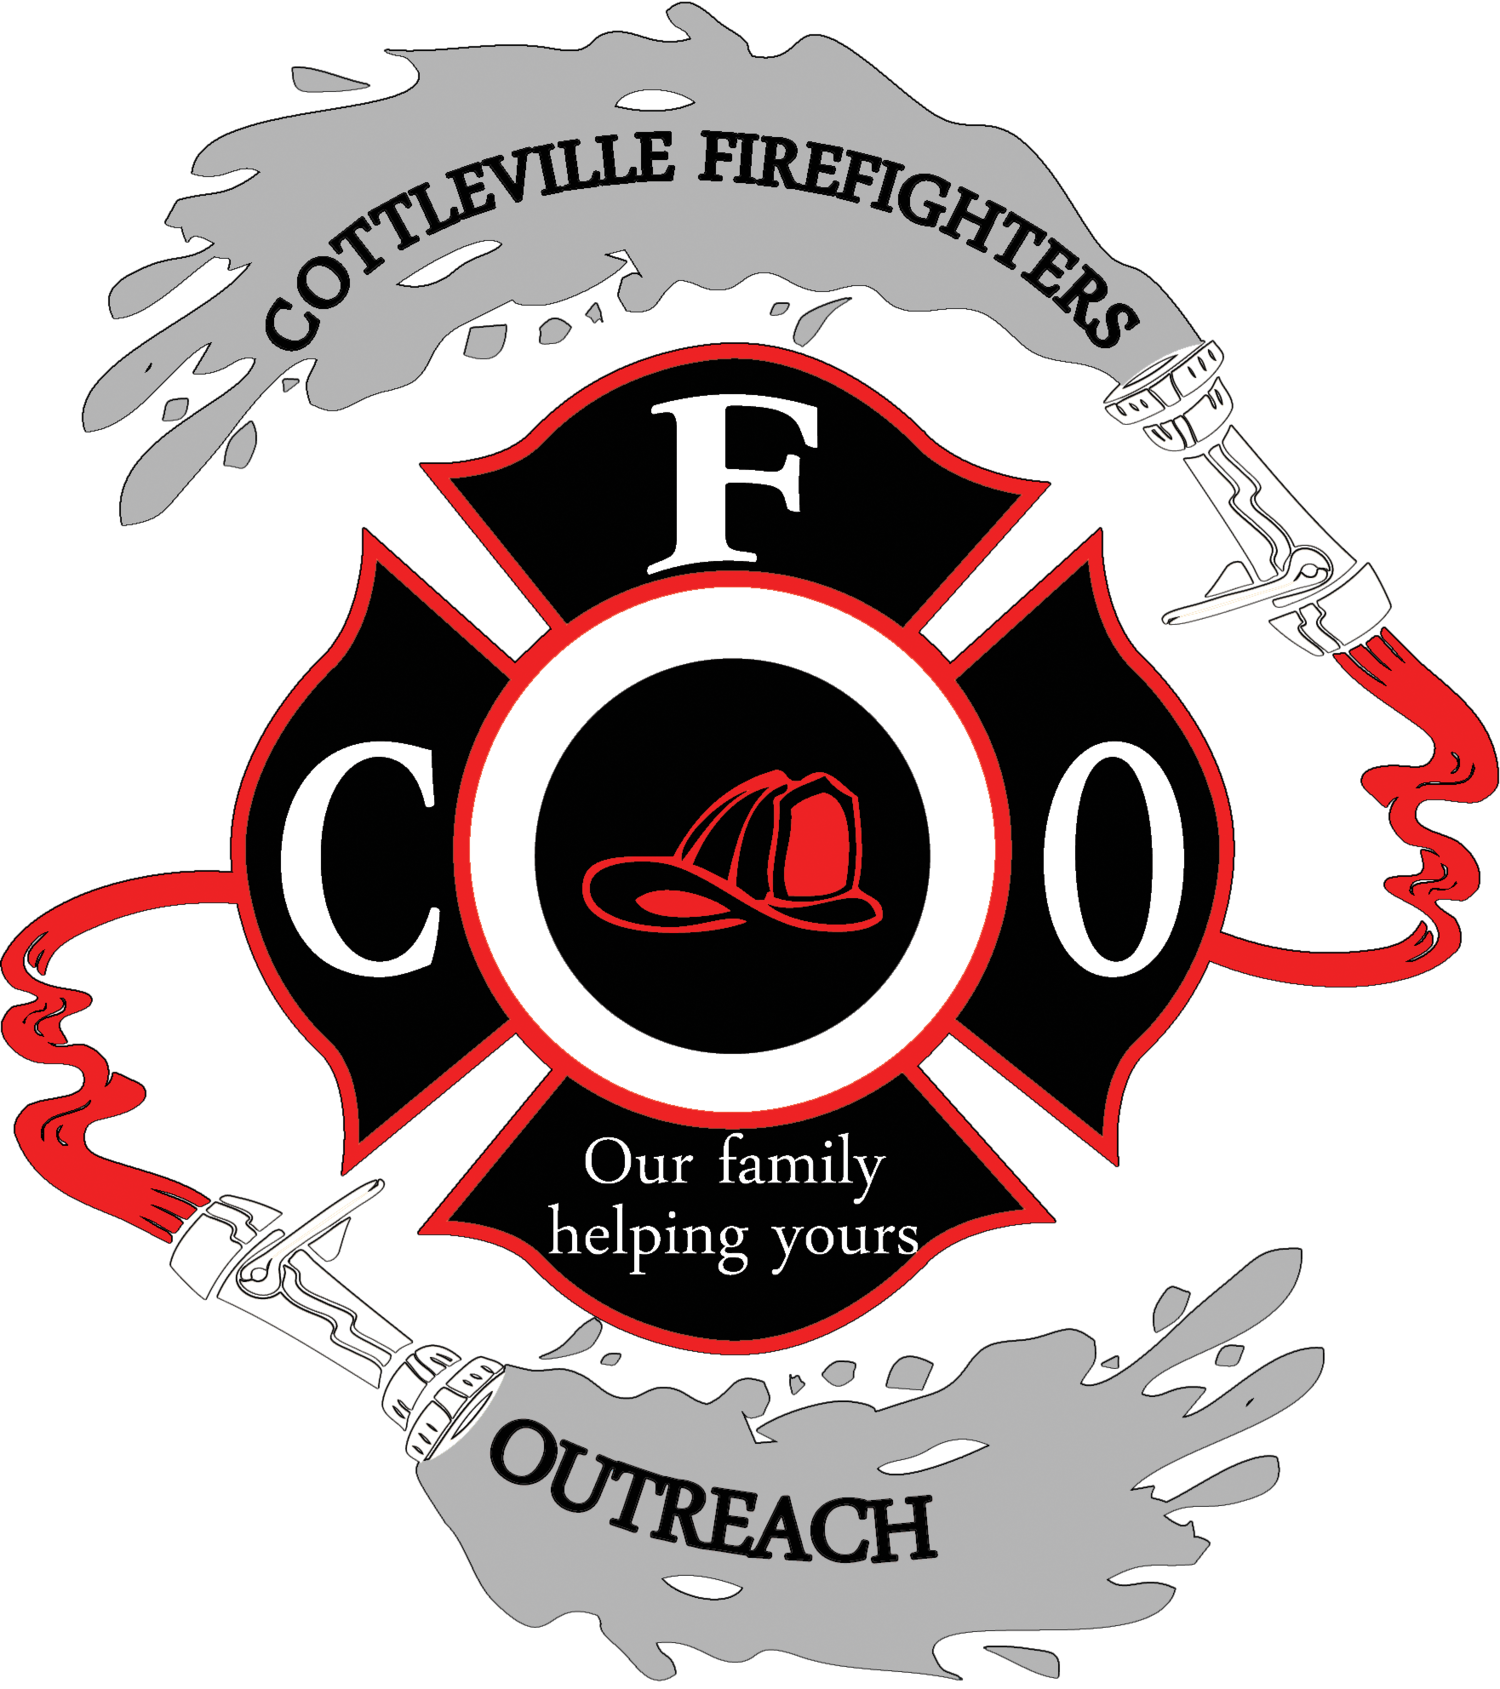 Cottleville Firefighters Outreach